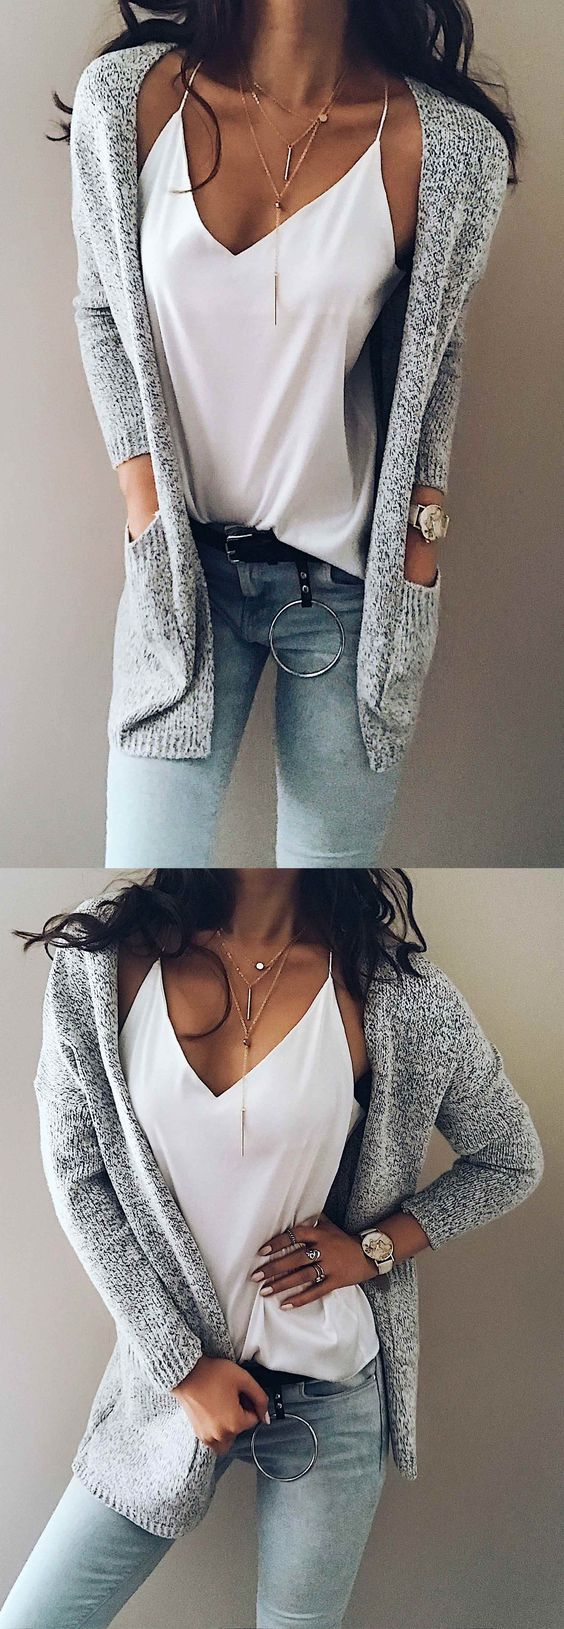 ONLY $33.99! Chicnico Women's Knit Going out Street chic Gray Long Sleeve Cotton Fall Sweaters Cardigan FALL FASHION 2017 TREND CHEAP ONLINE STORE